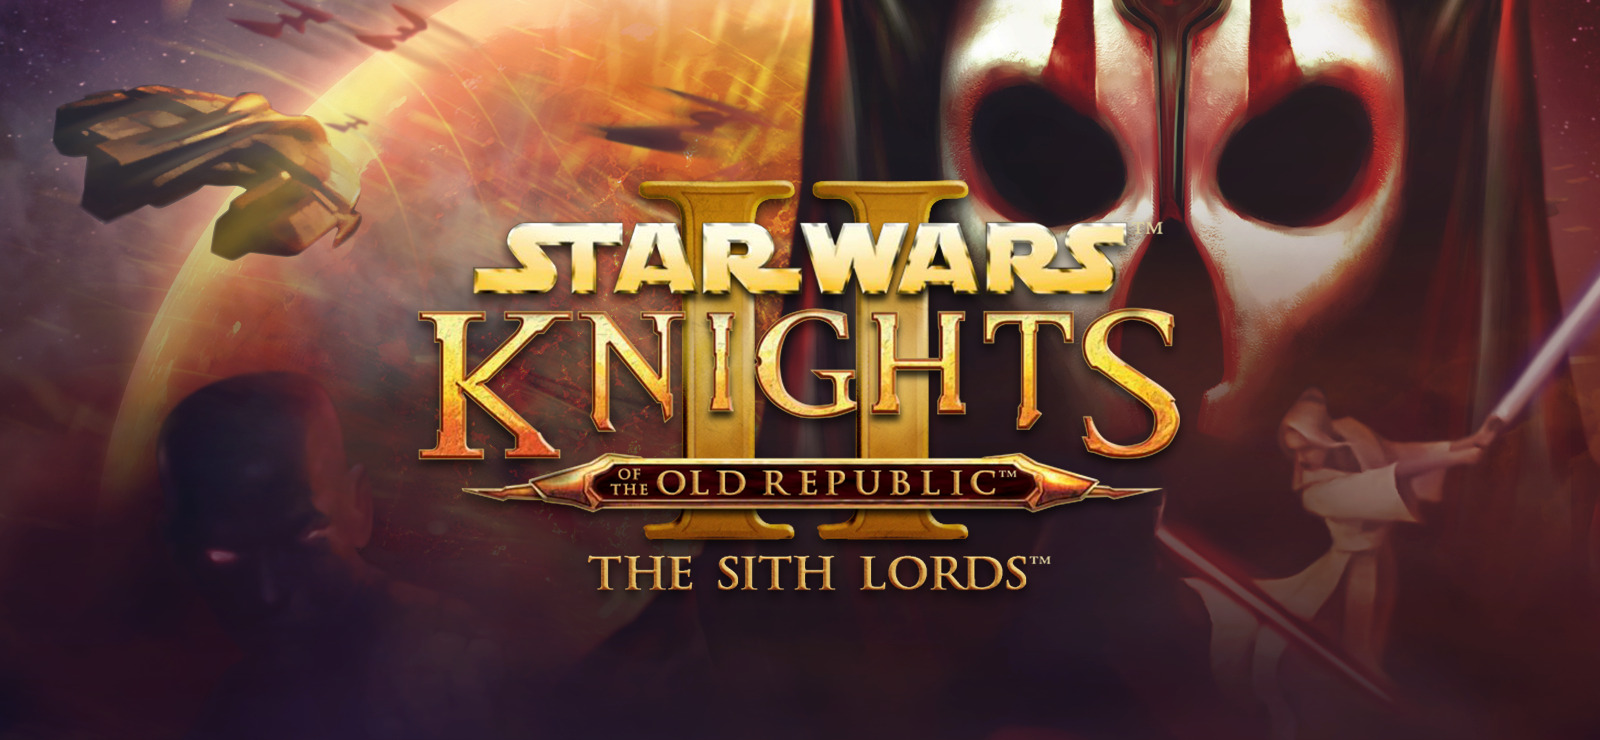 Star Wars Knights Of The Old Republic Ii The Sith Lords On Gog Com